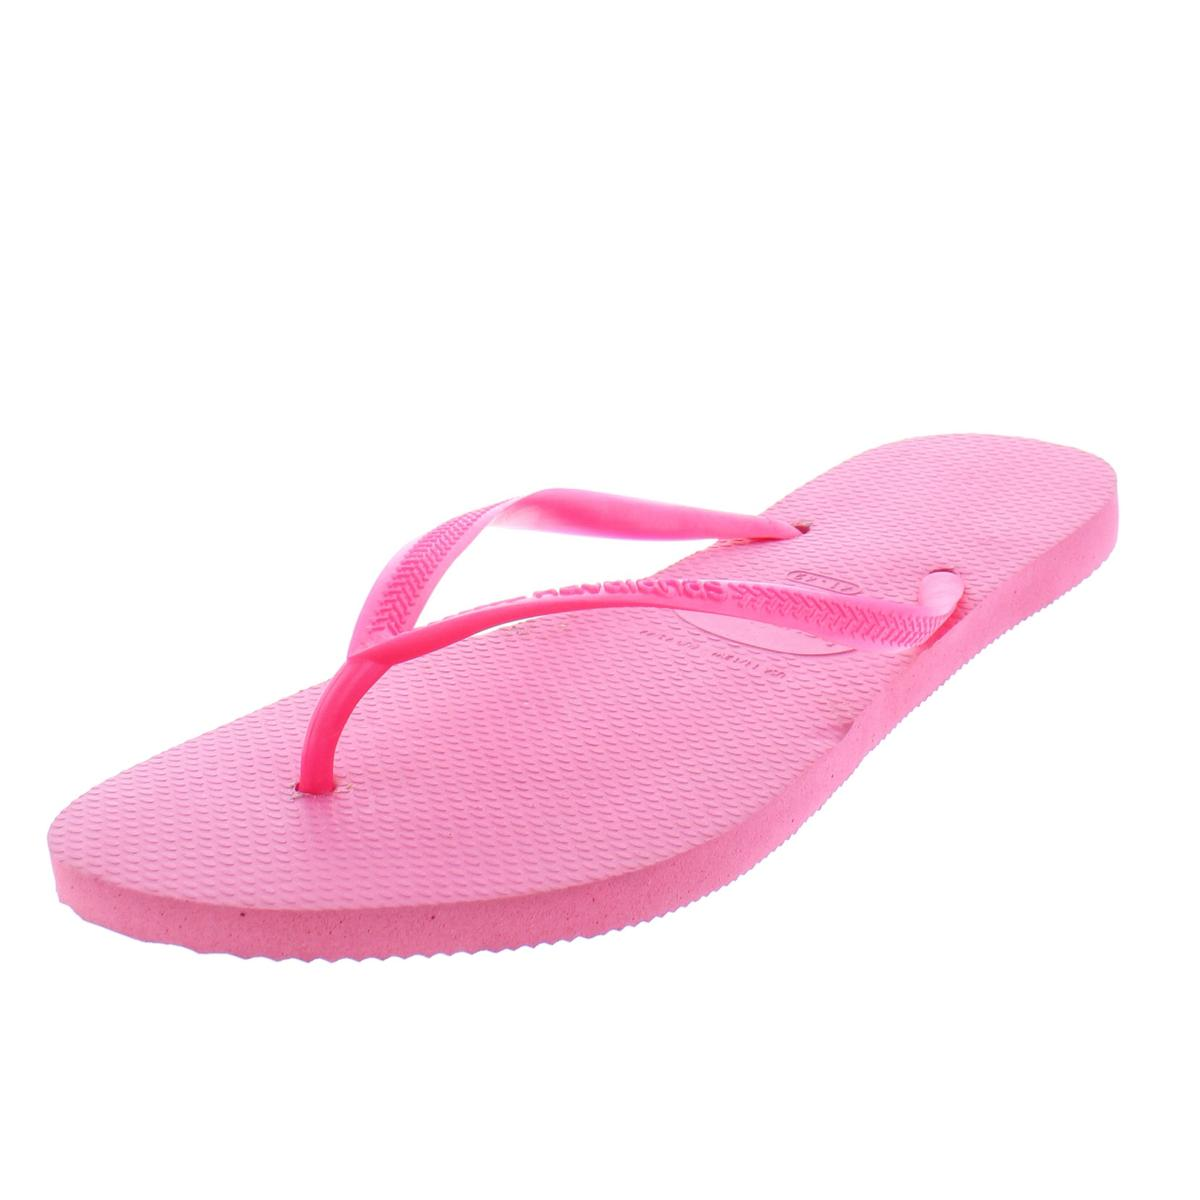 3576f5f5f Details about Havaiana Womens Slim Pink Thong Flip-Flops Sandals 9-10  Medium (B